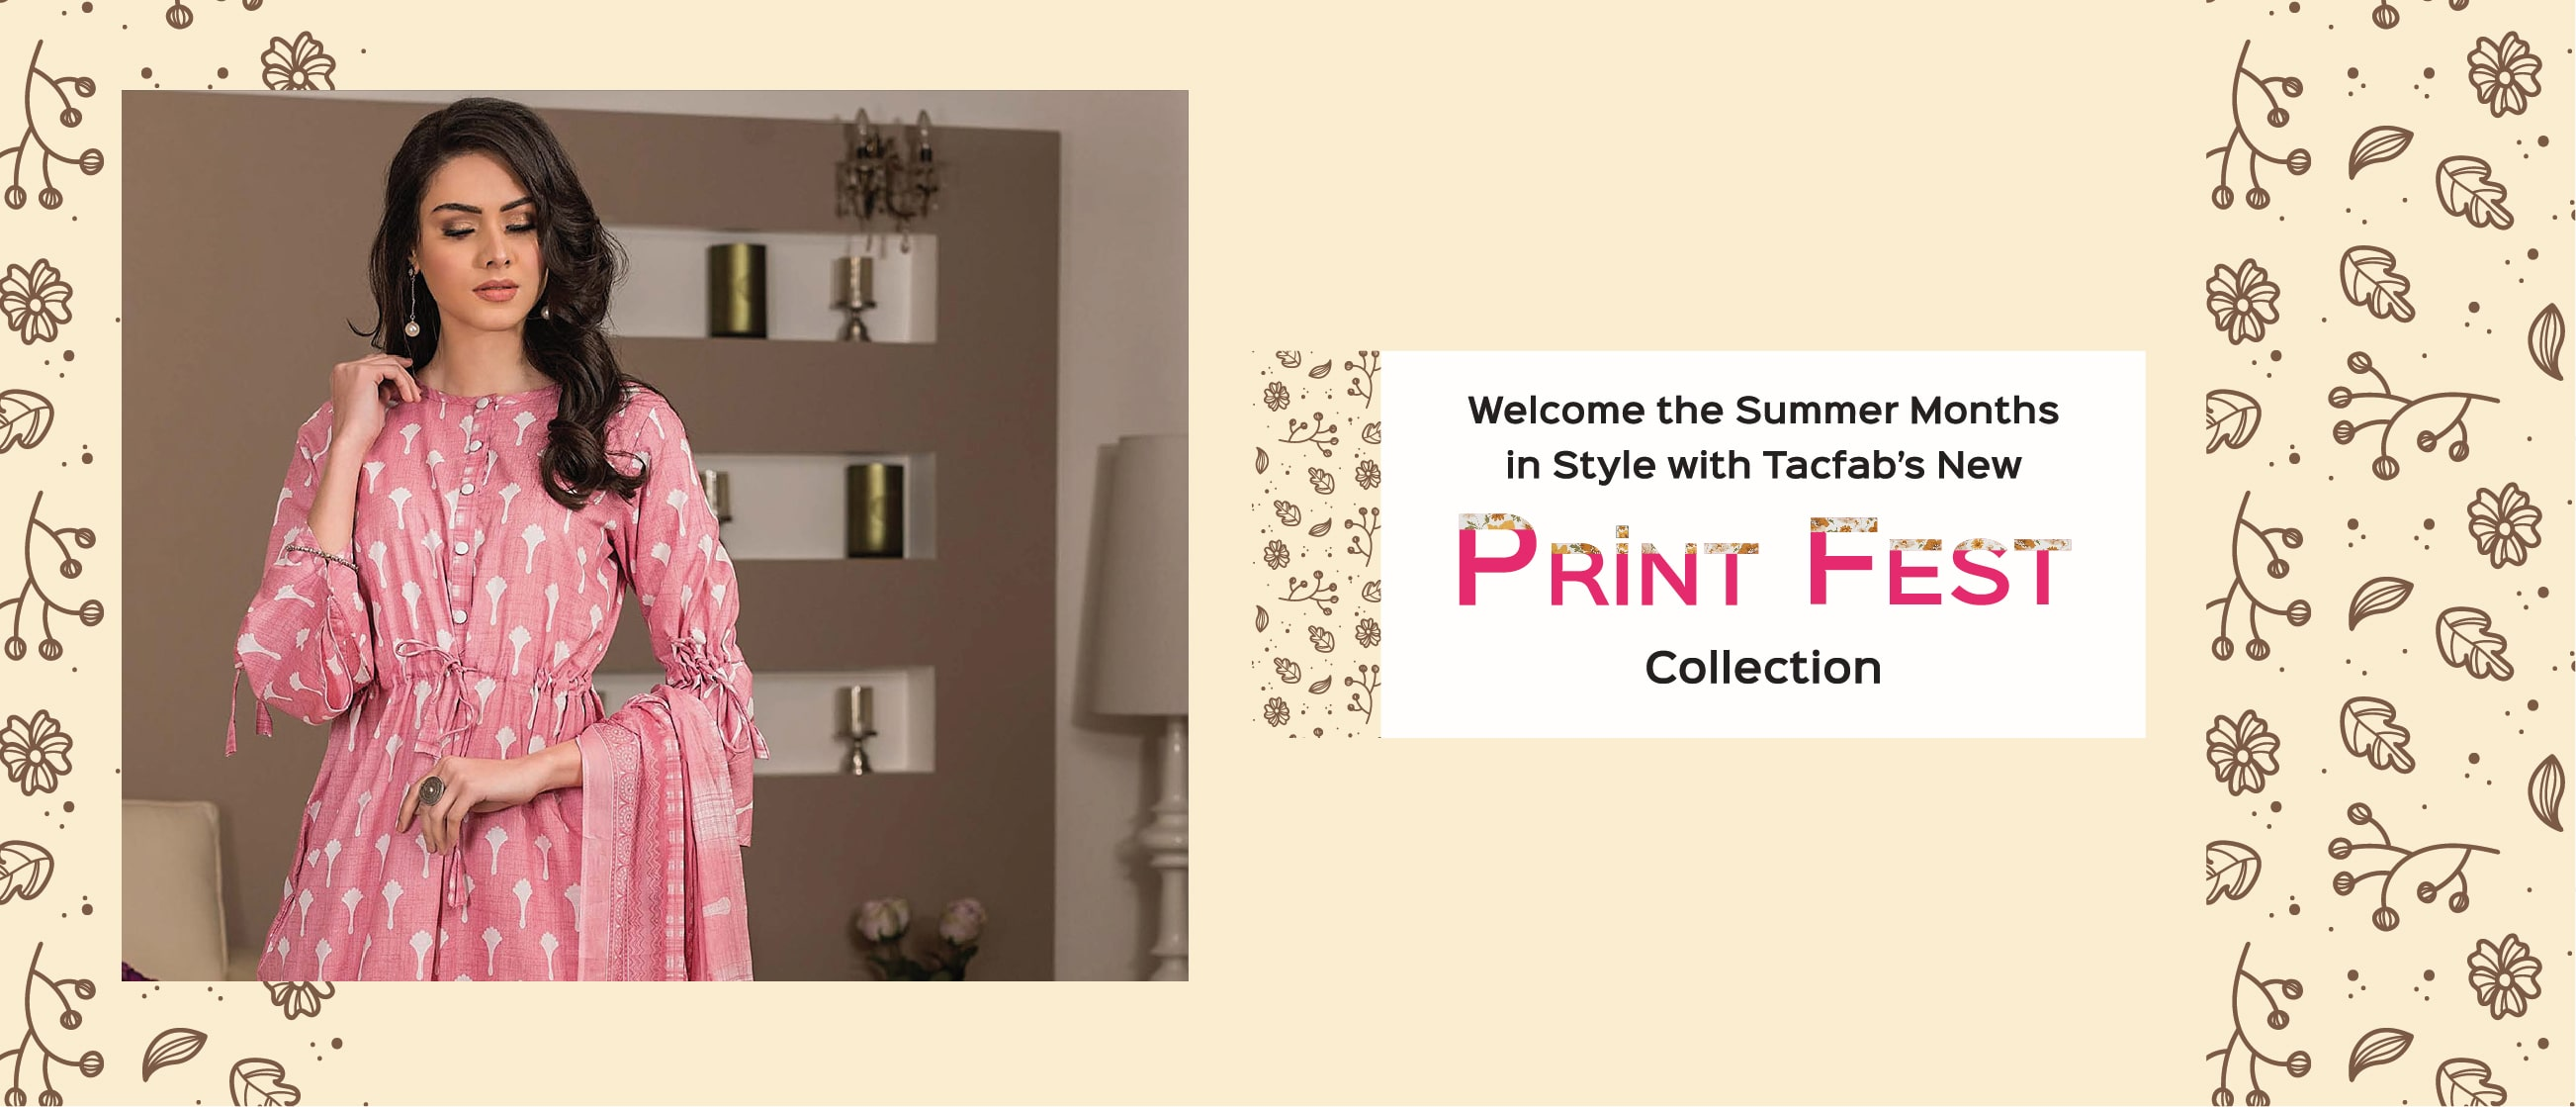 Welcome the Summer Months in Style with Tacfab's New Print Fest Collection